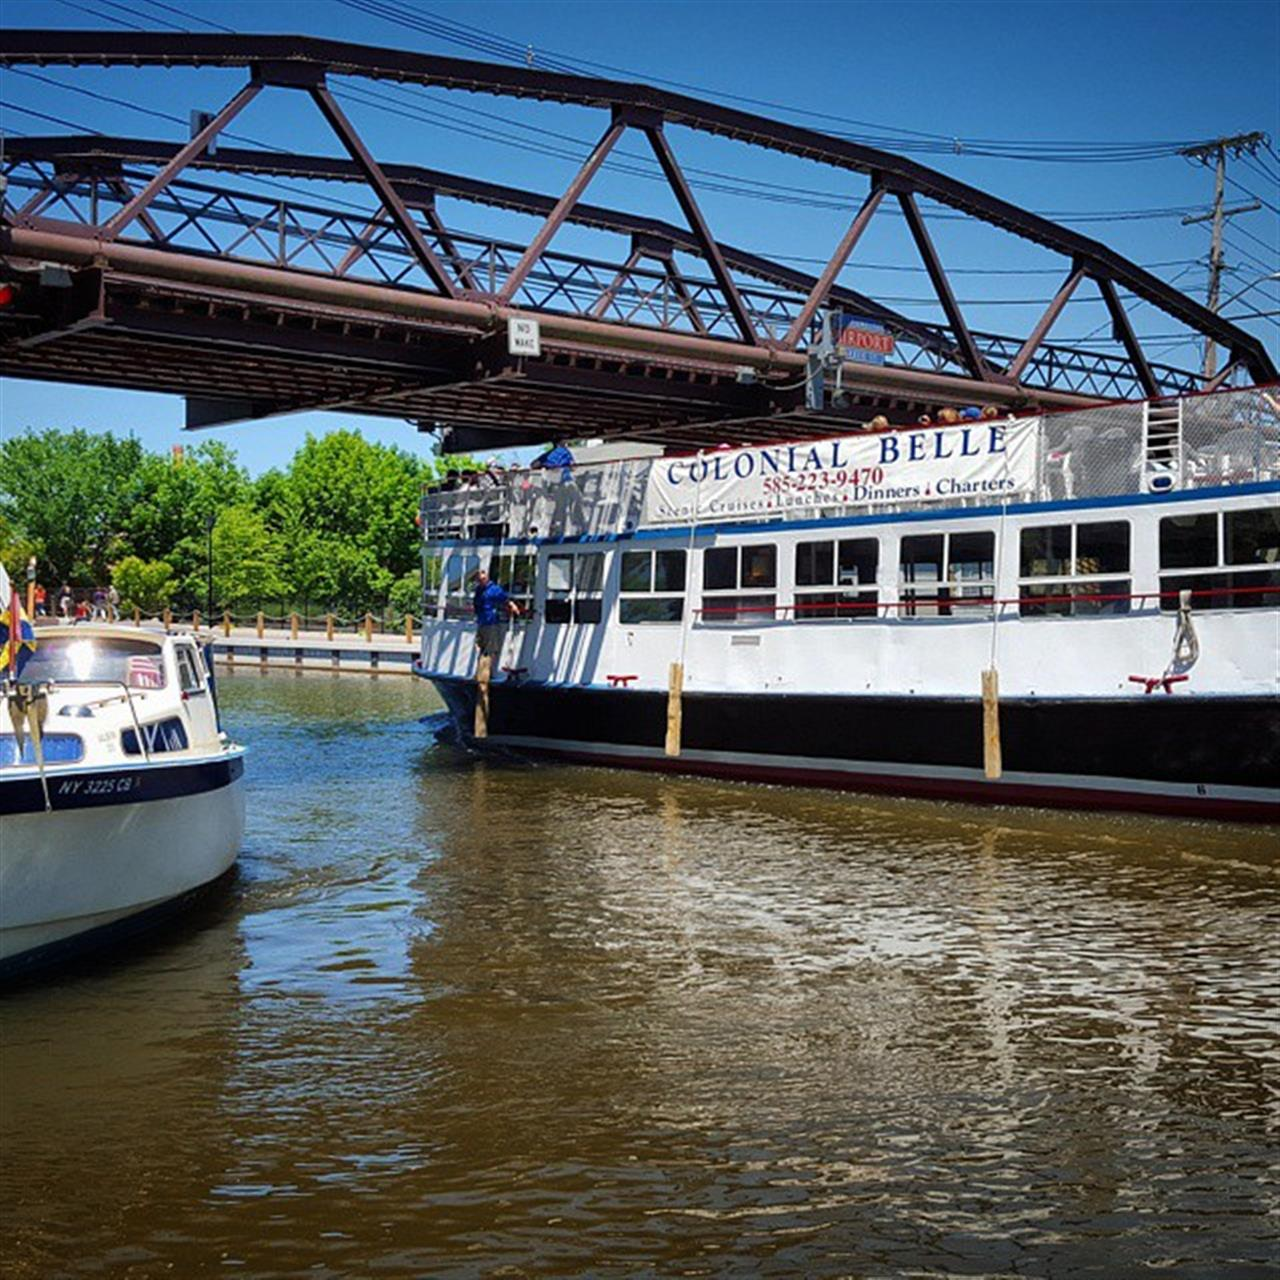 #fairport #fairportcanaldays #colonialbelle #nature #water #boat # bridge #rochesterny #roc #roctopshots #leadingrelocal #sun #blueskies #summer #vscocam #adventure #photooftheday # photography